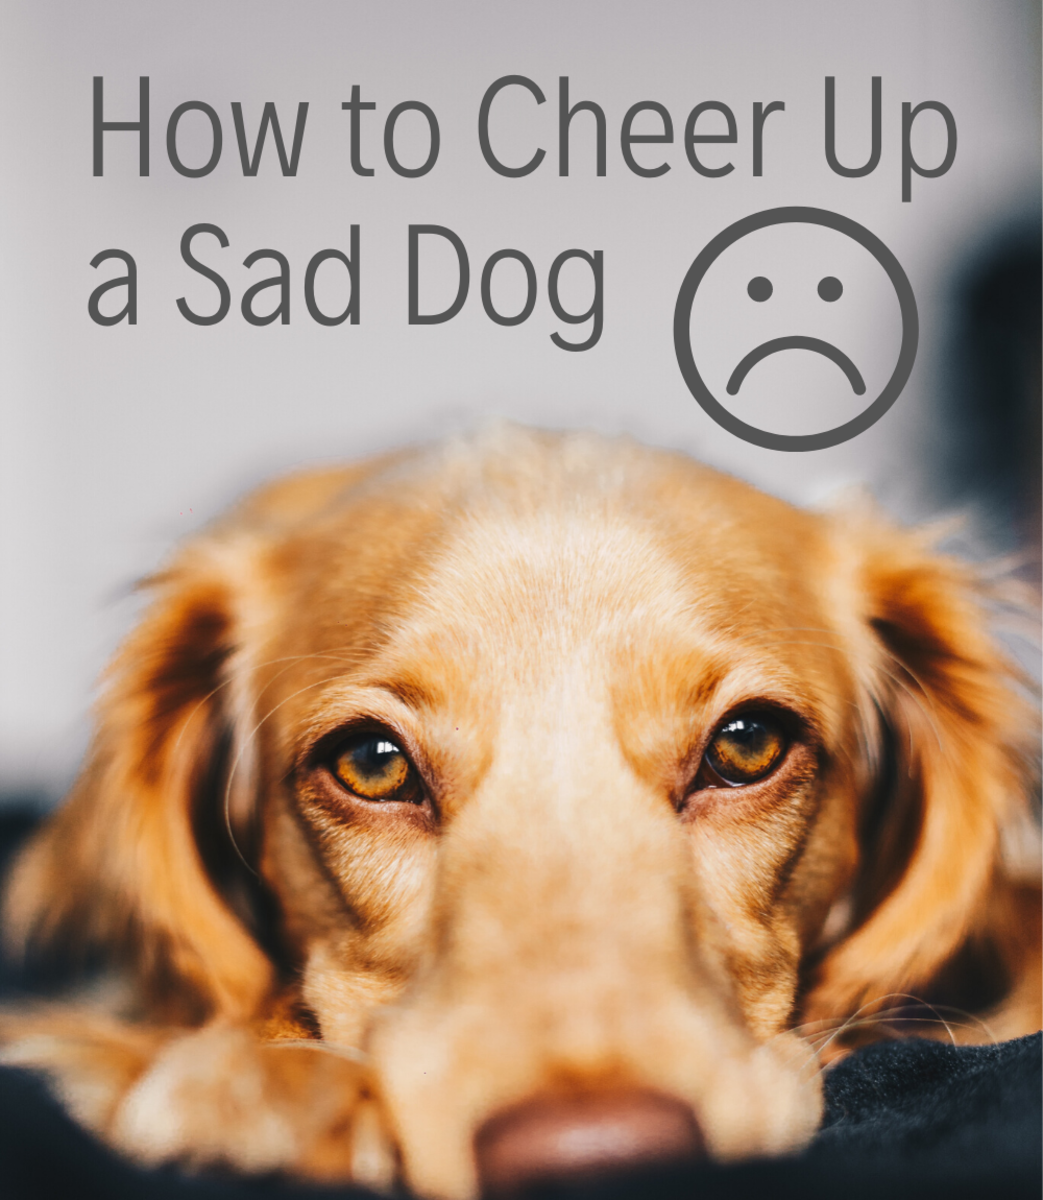 7 Best Methods to Cheer Up a Sad or Depressed Dog